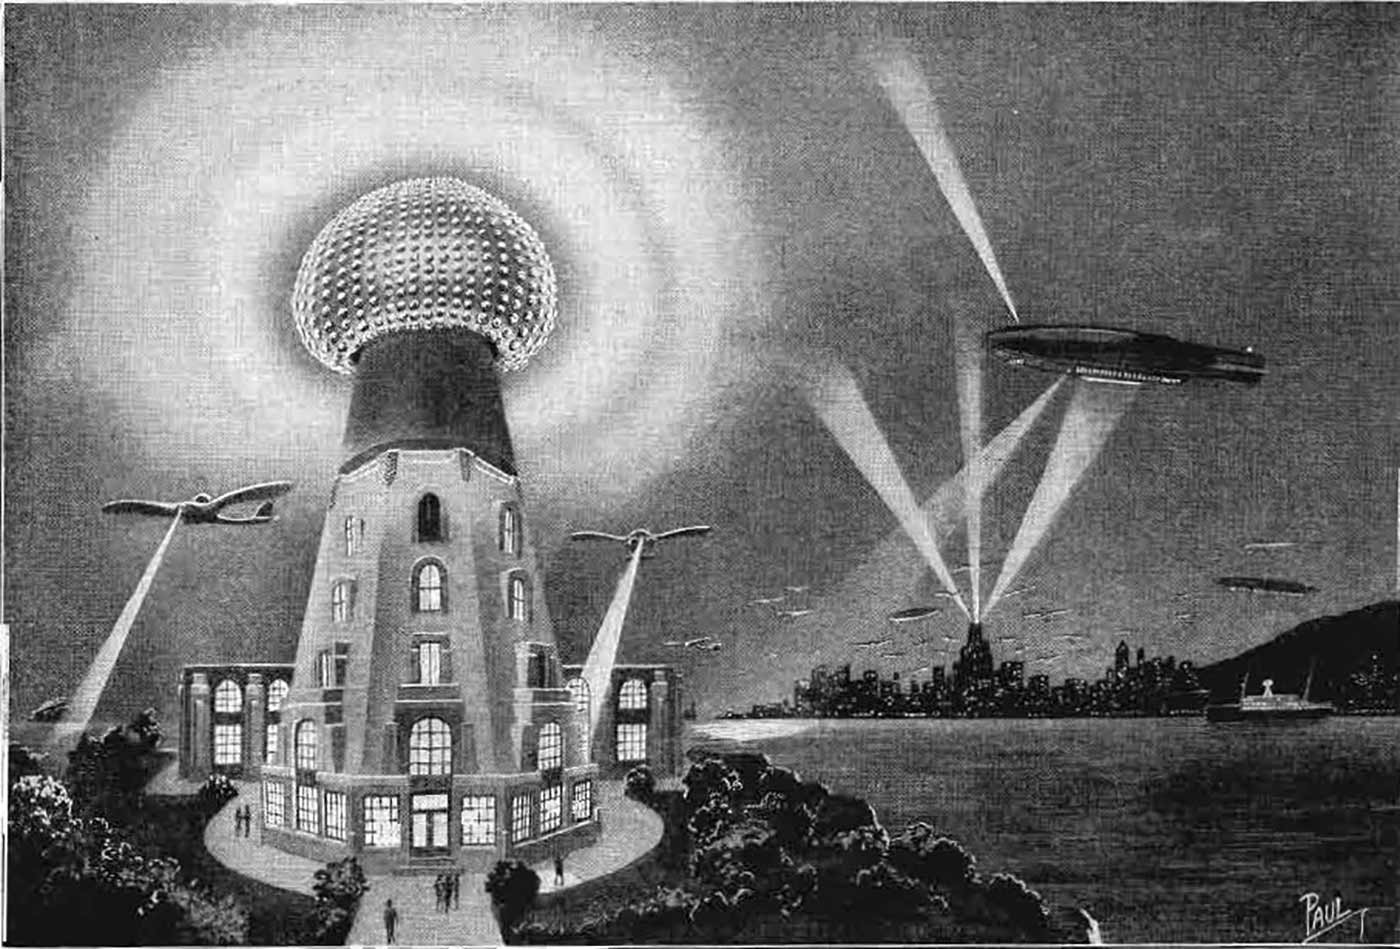 Frank R. Paul's 1925 conception of what Nikola Tesla's wireless power transmission system might look like in the future.